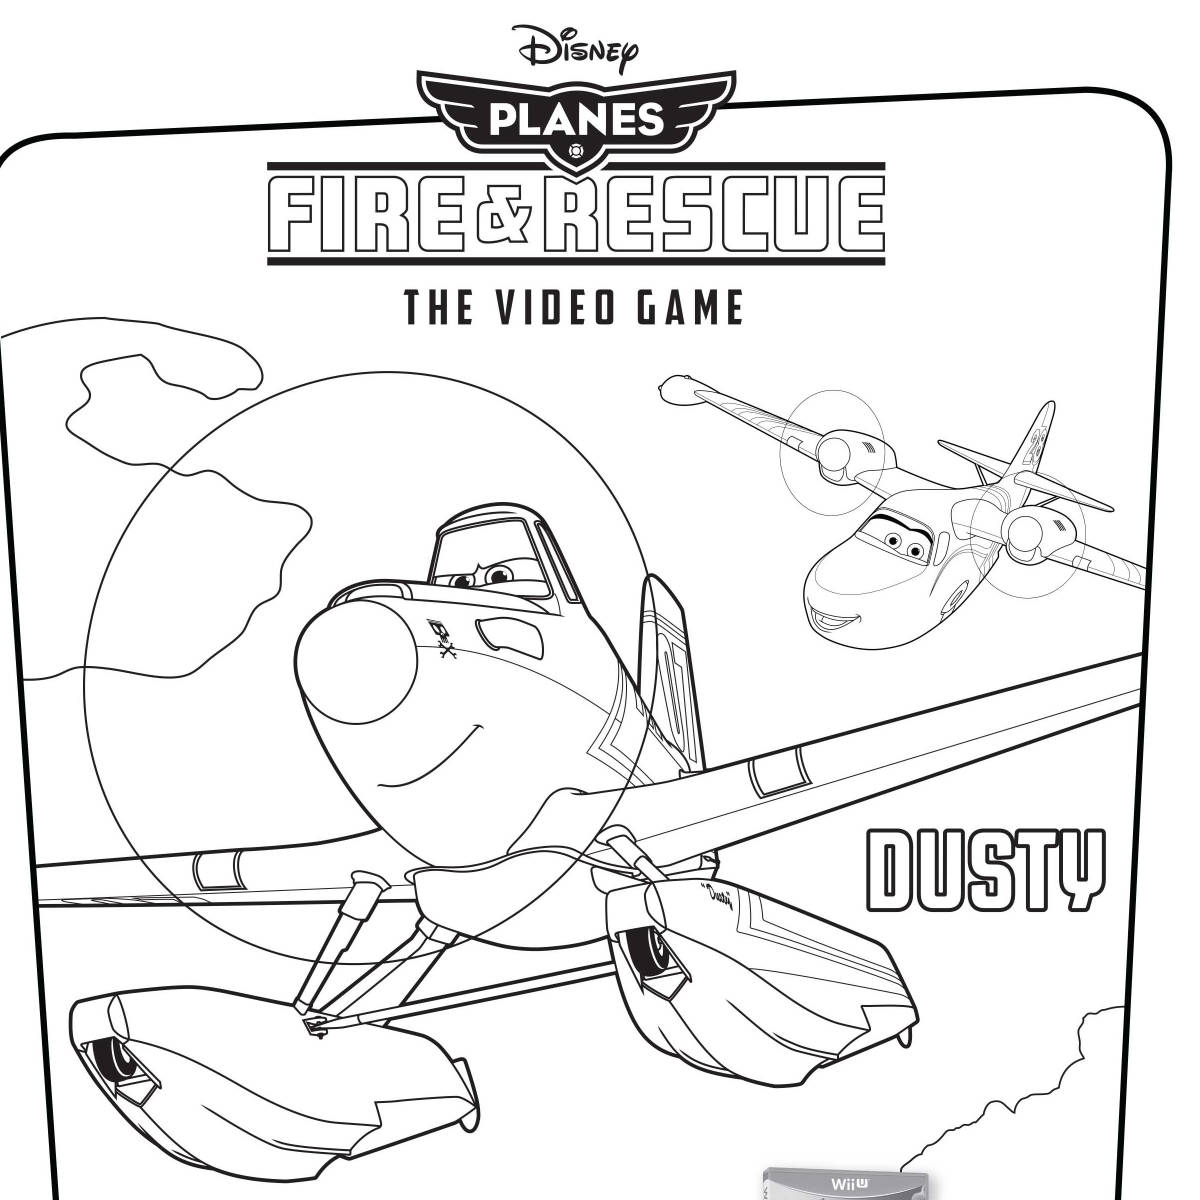 Disney's Planes Fire Rescue Video Game Coloring Pages Disney 16895